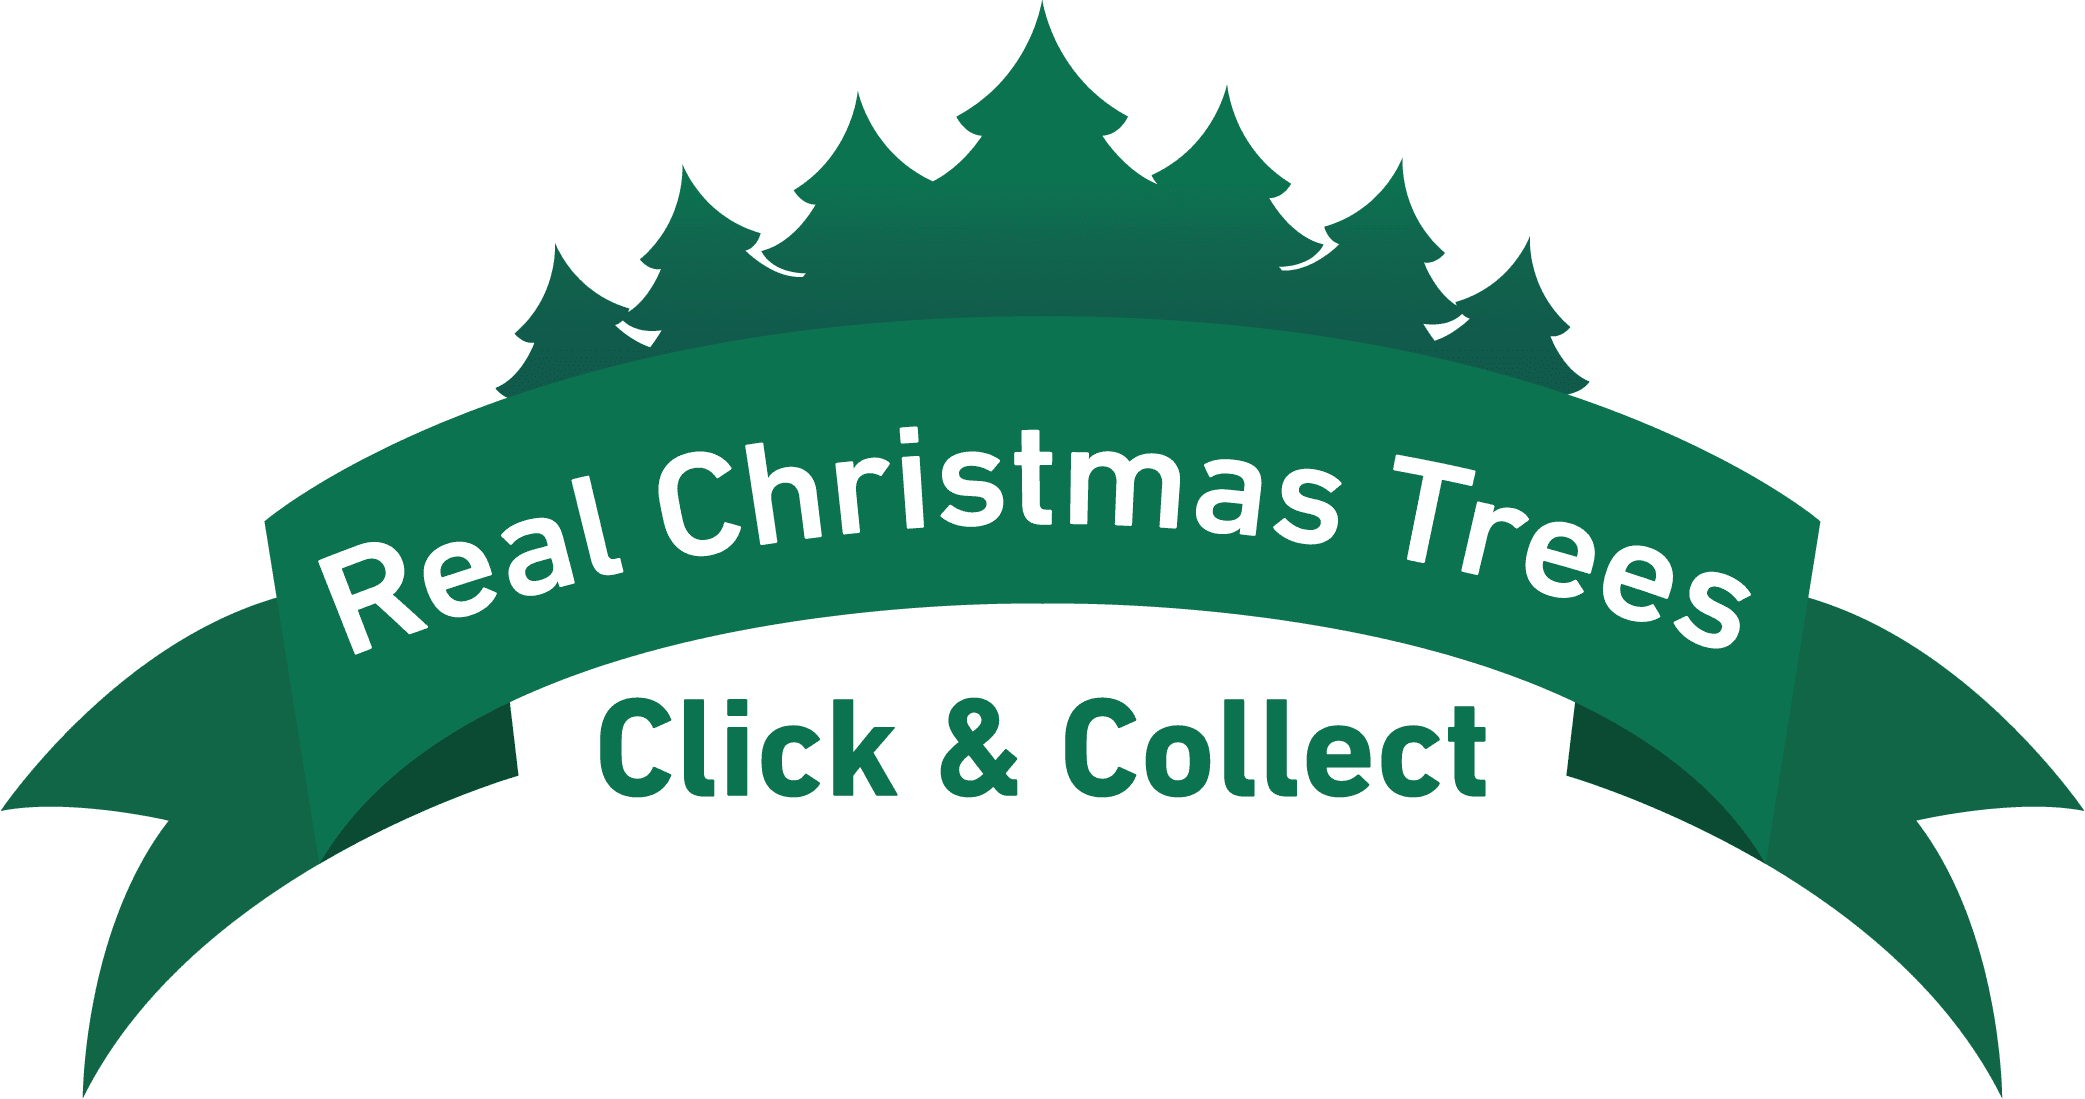 Real Christmas Trees - Click & Collect